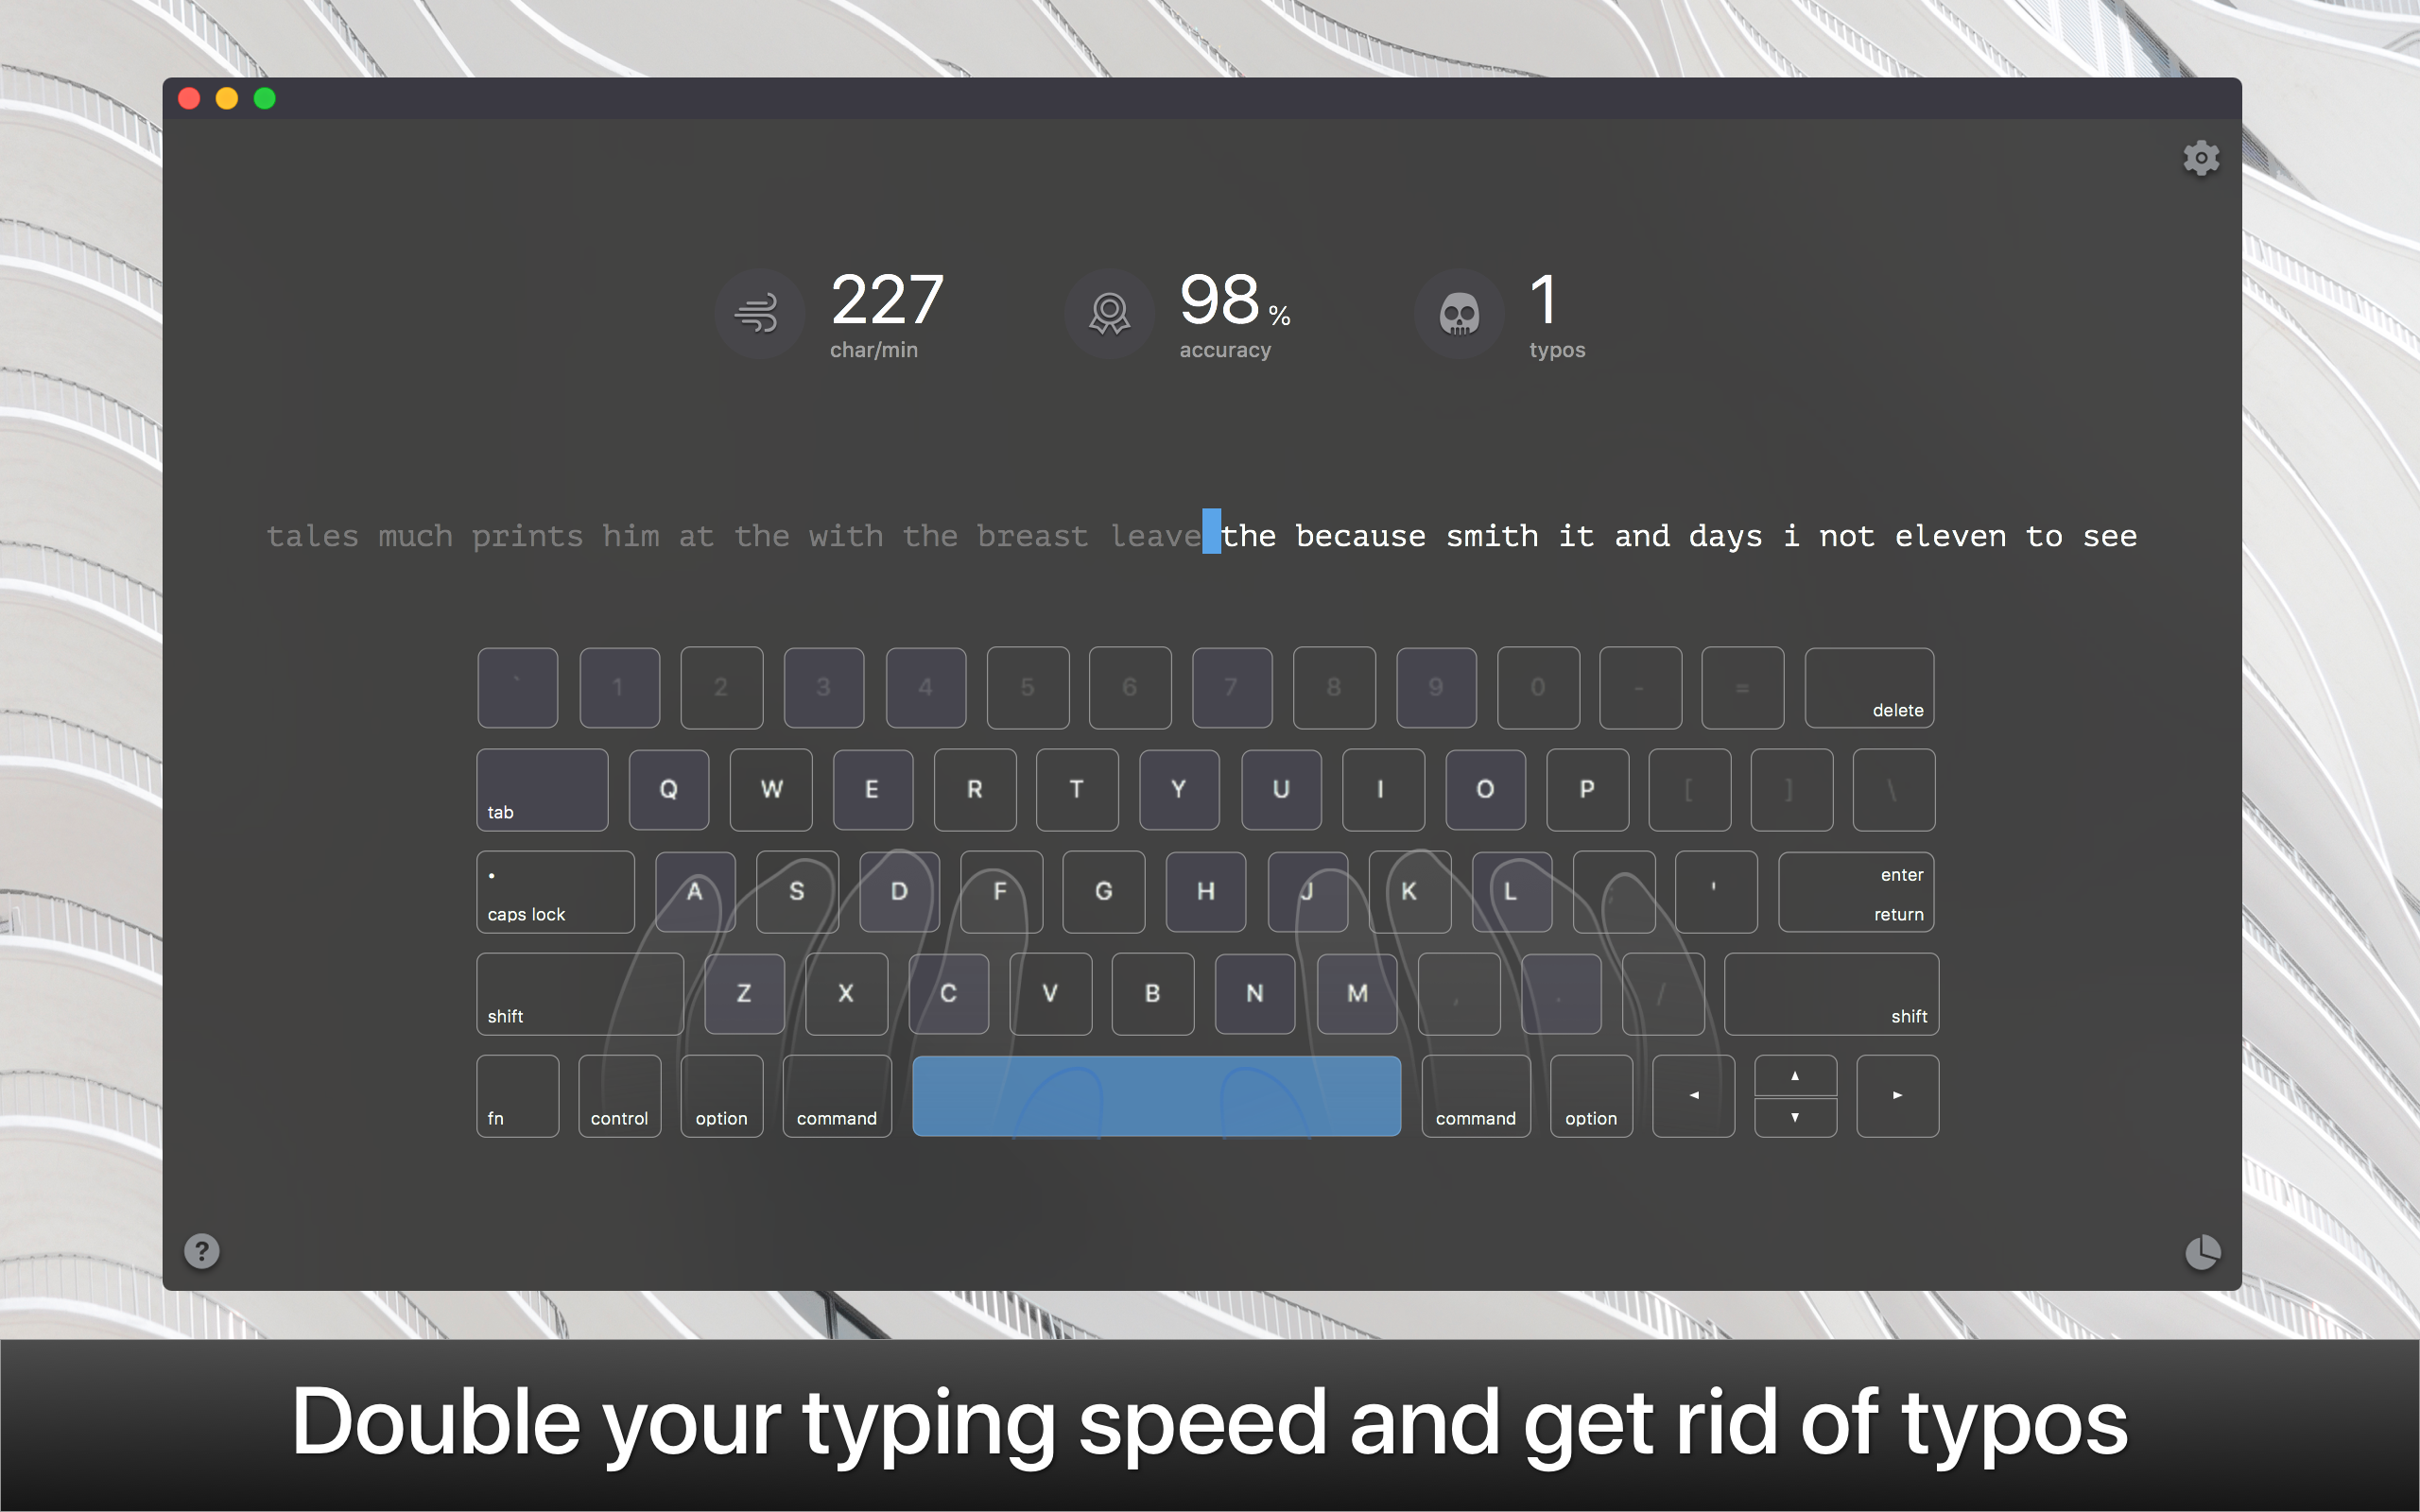 Double your typing speed and get rid of typos.